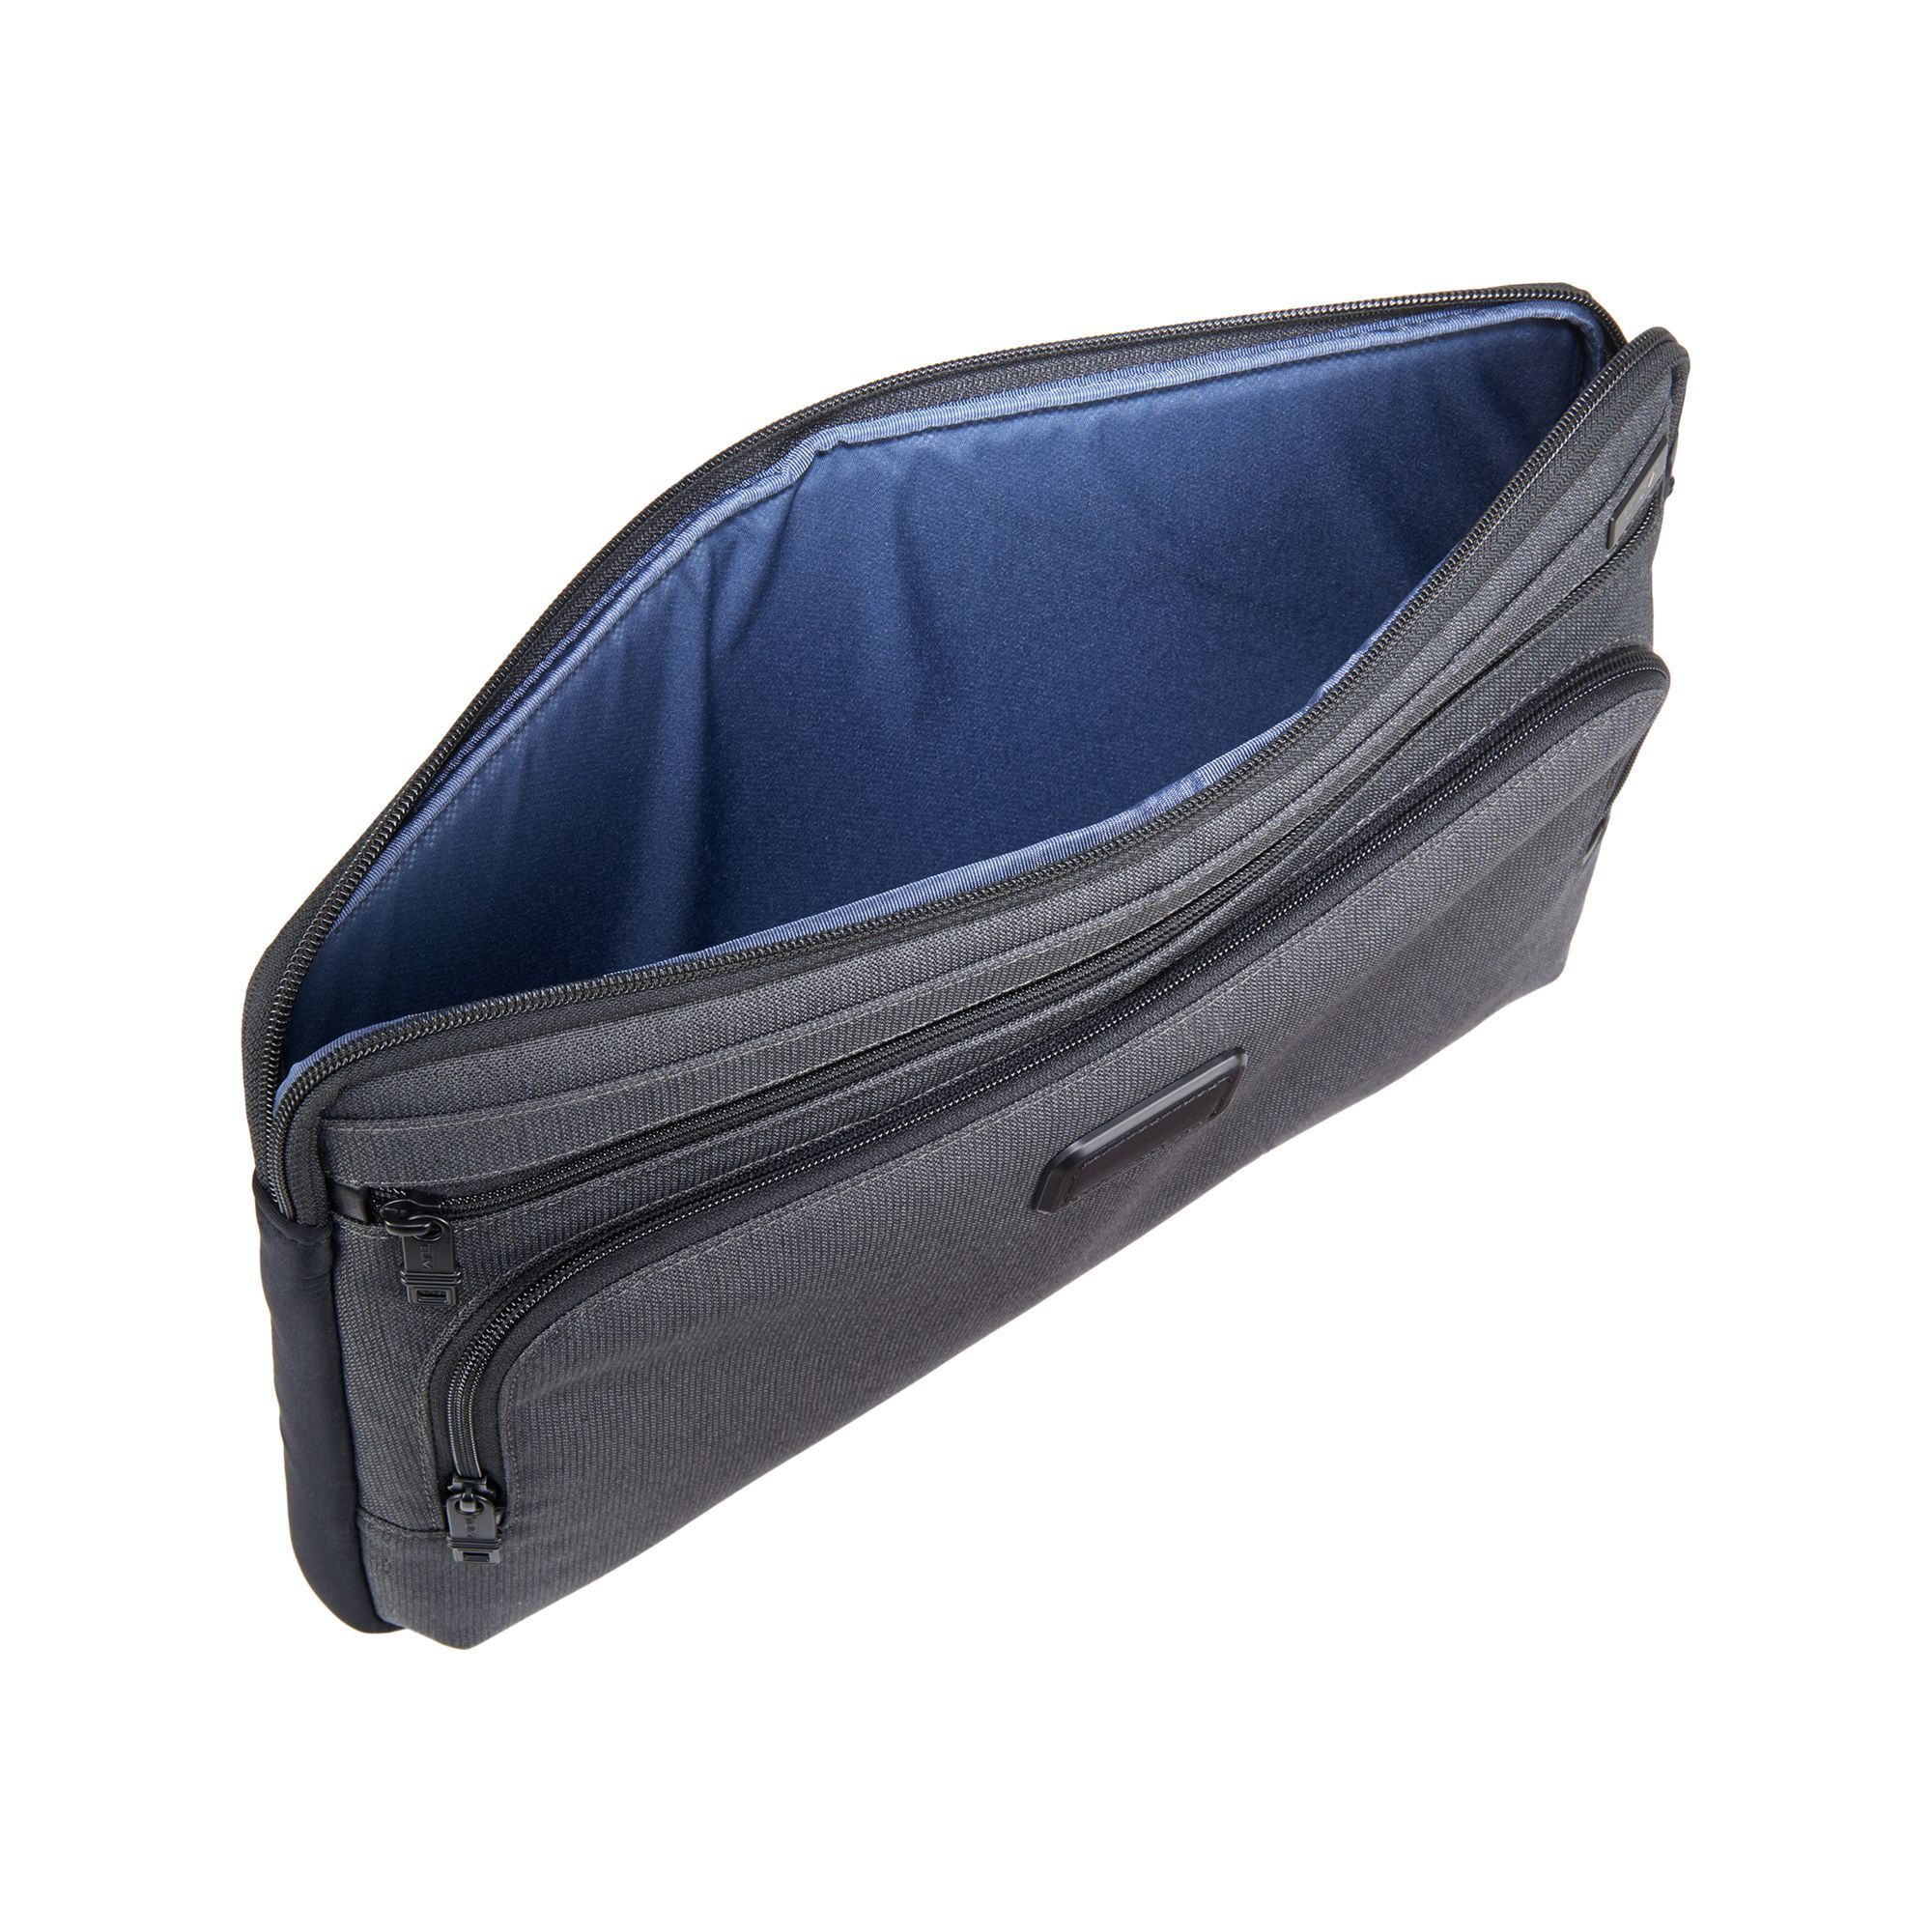 TUMI ALPHA 2 LARGE LAPTOP COVER  STYLE#: 26165AT2